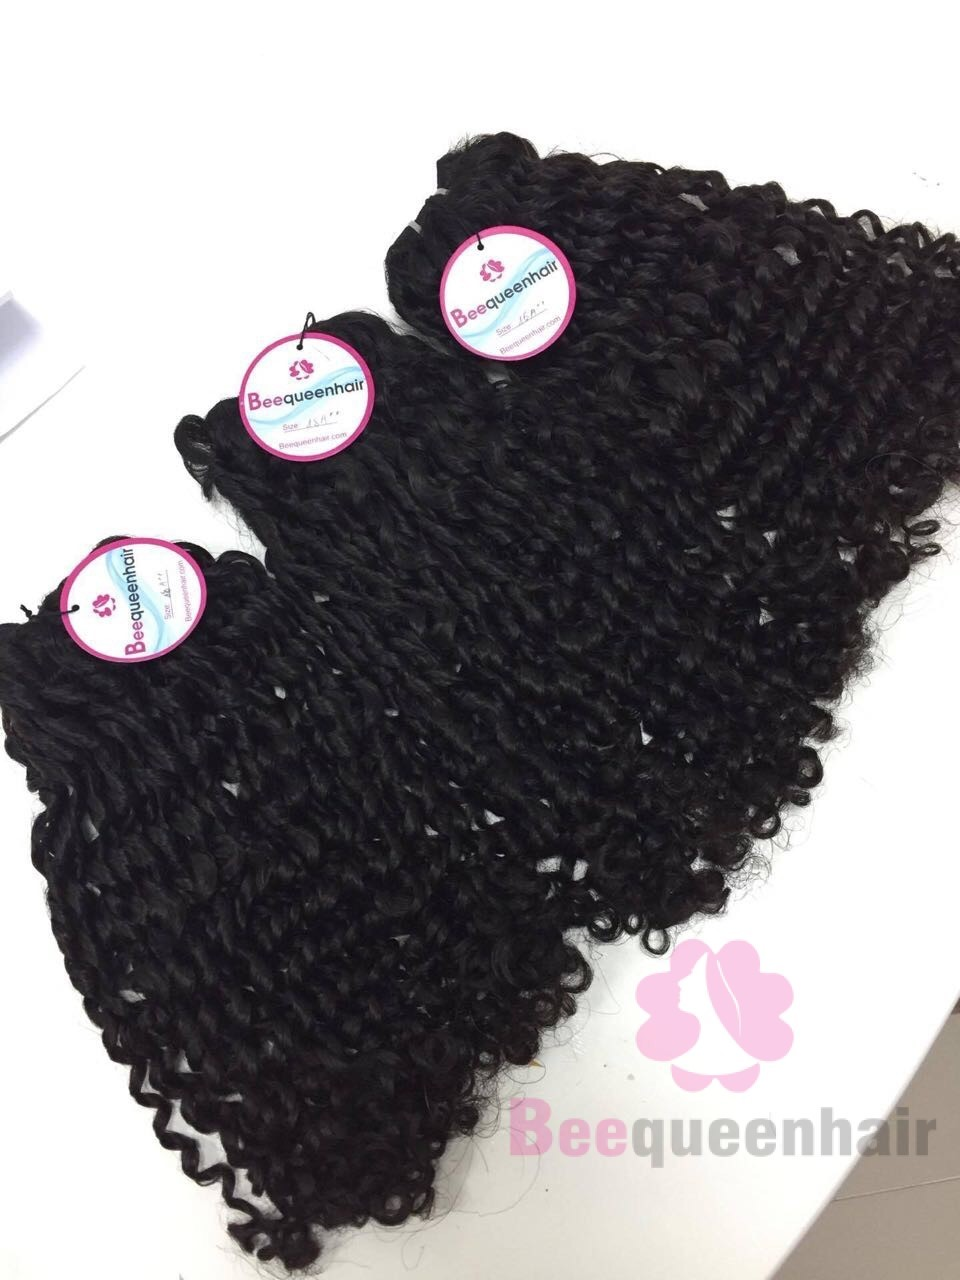 24 Inch Weave Curly Human Hair